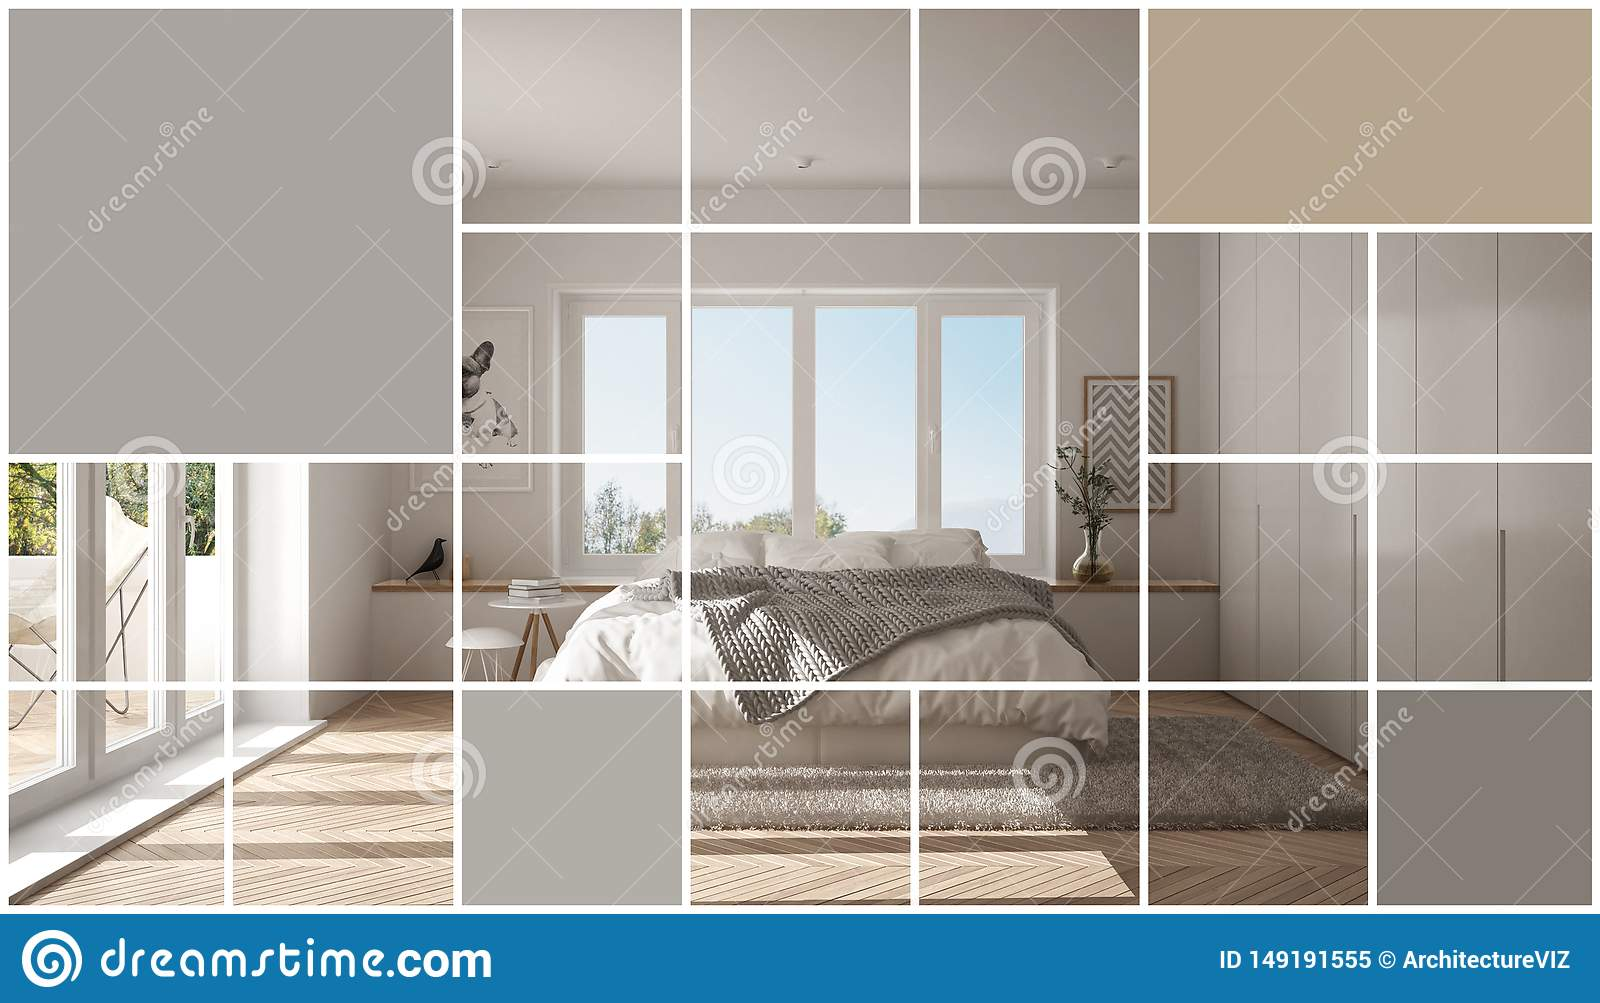 Geometric Square Mosaic Graphic Effect With Copy Space For